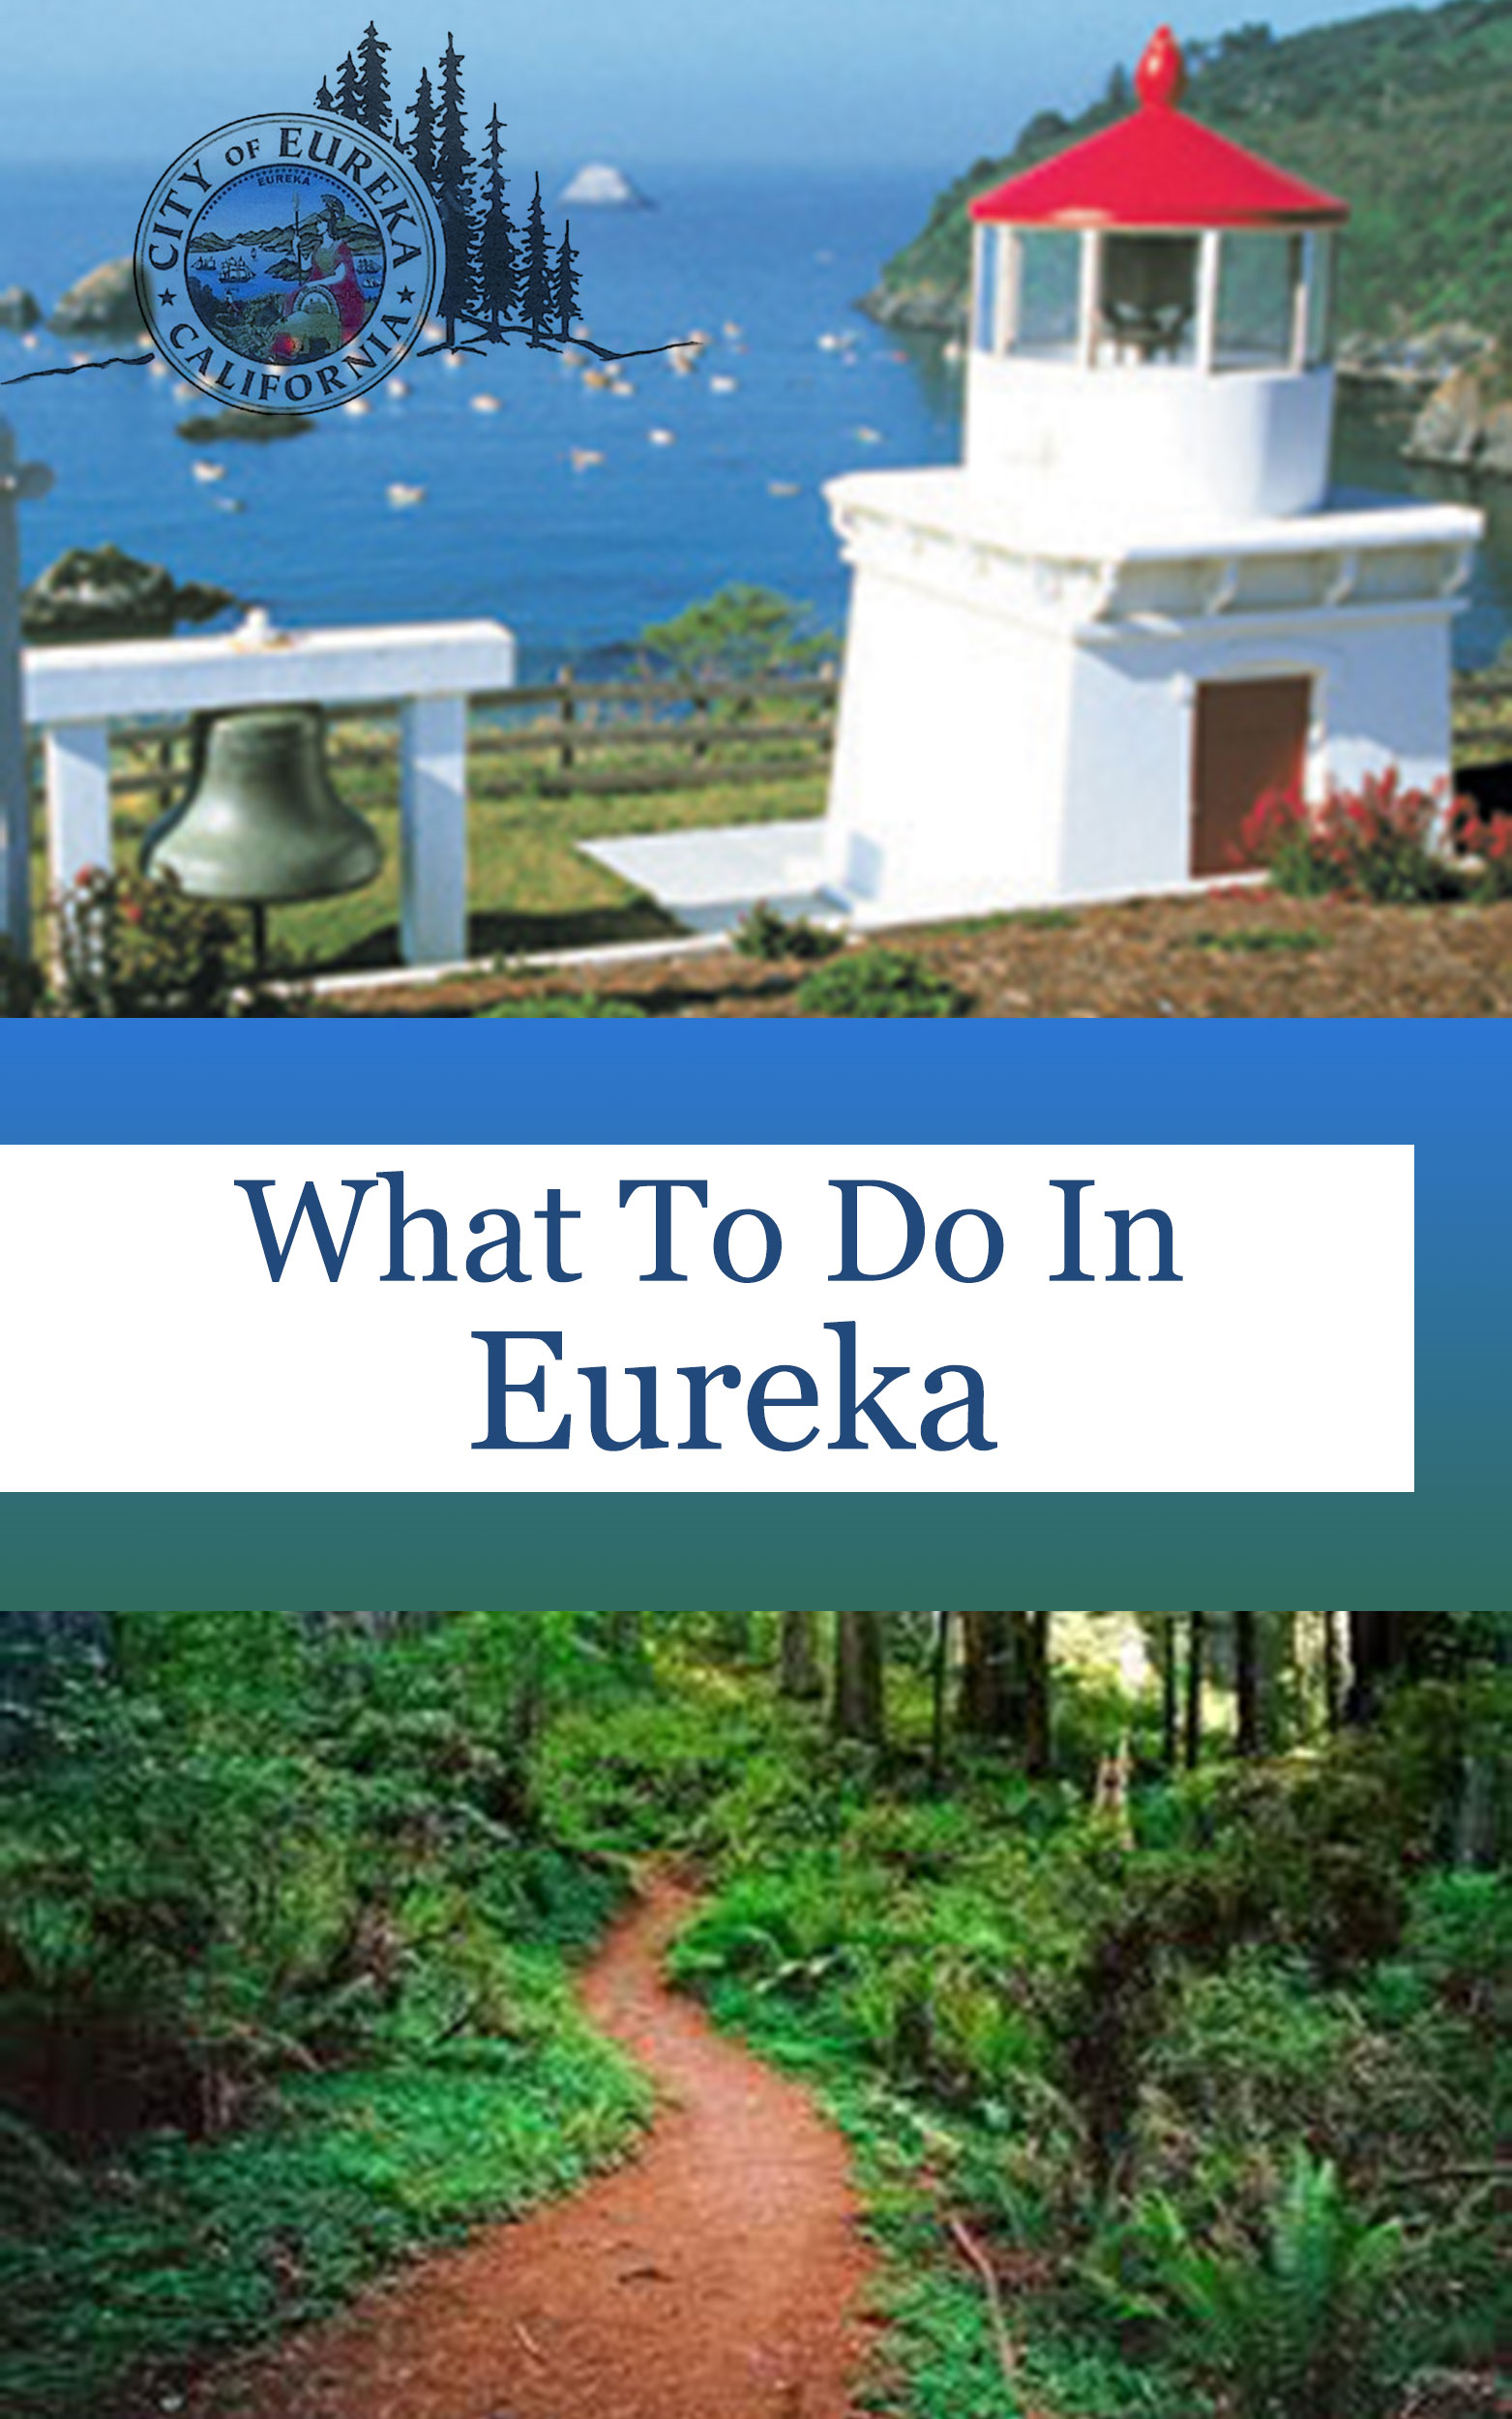 What To Do In Eureka